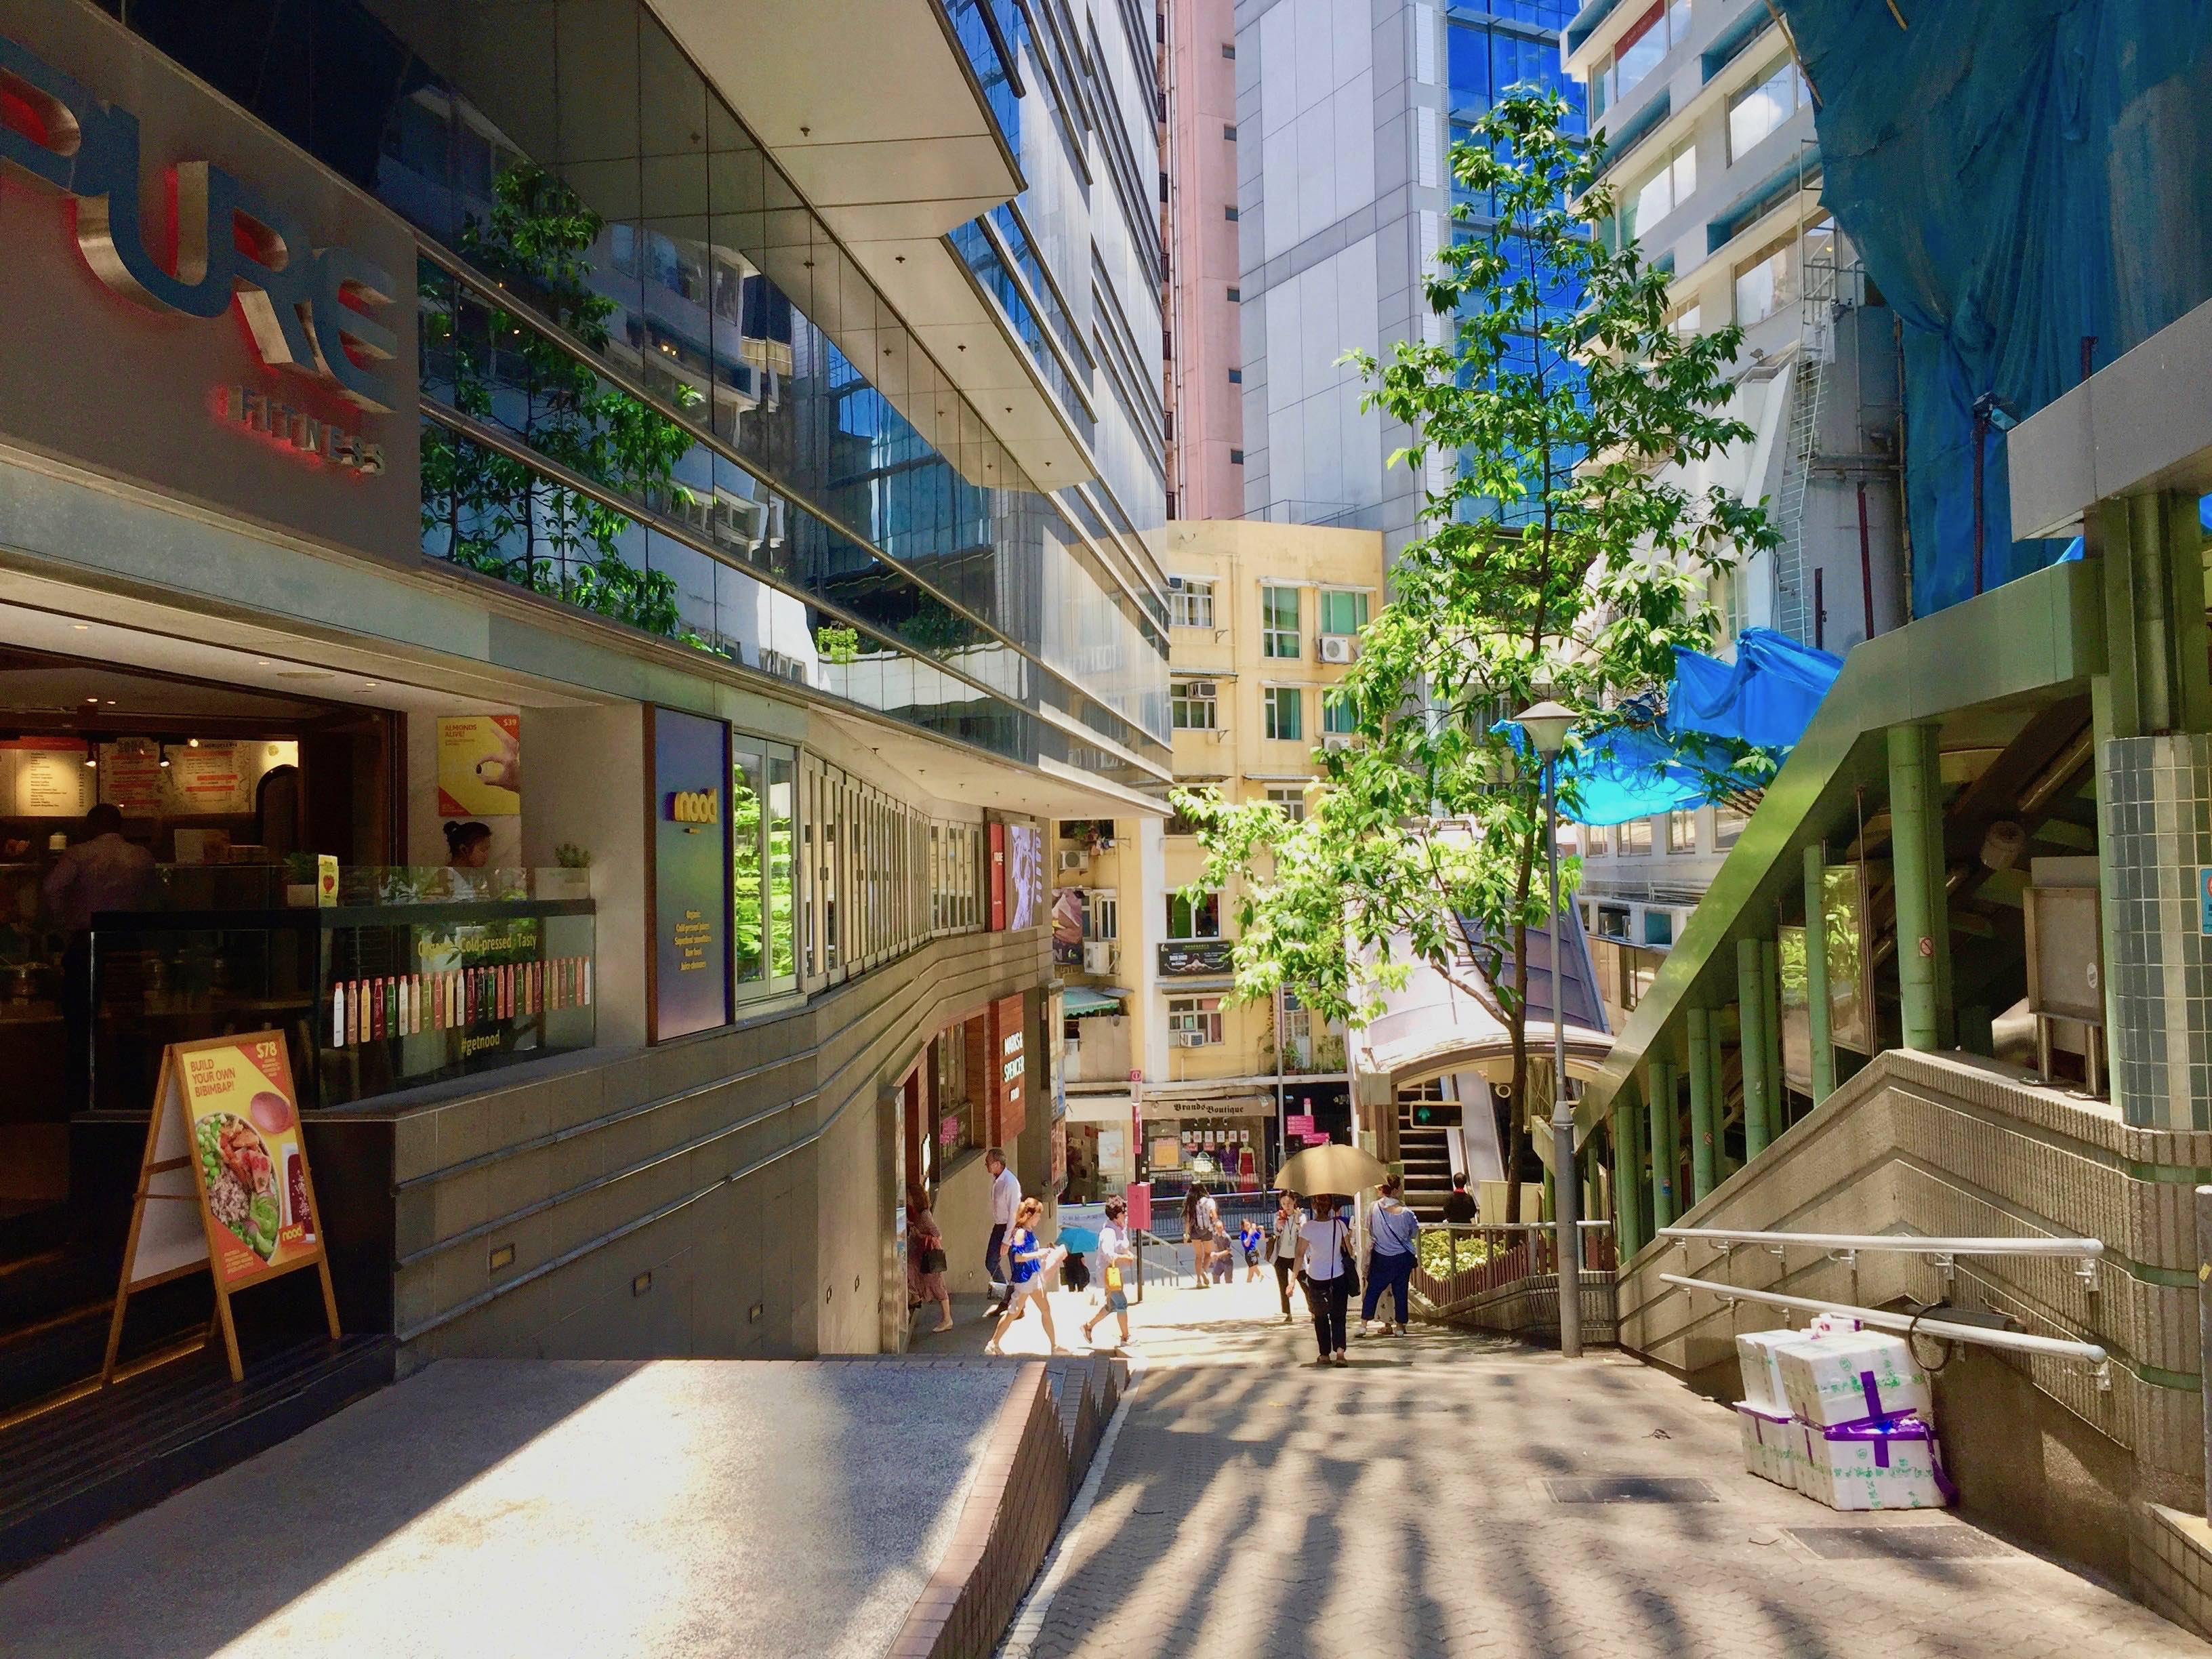 Hong Kong Central High ceiling restaurant space for lease on Shelley Street